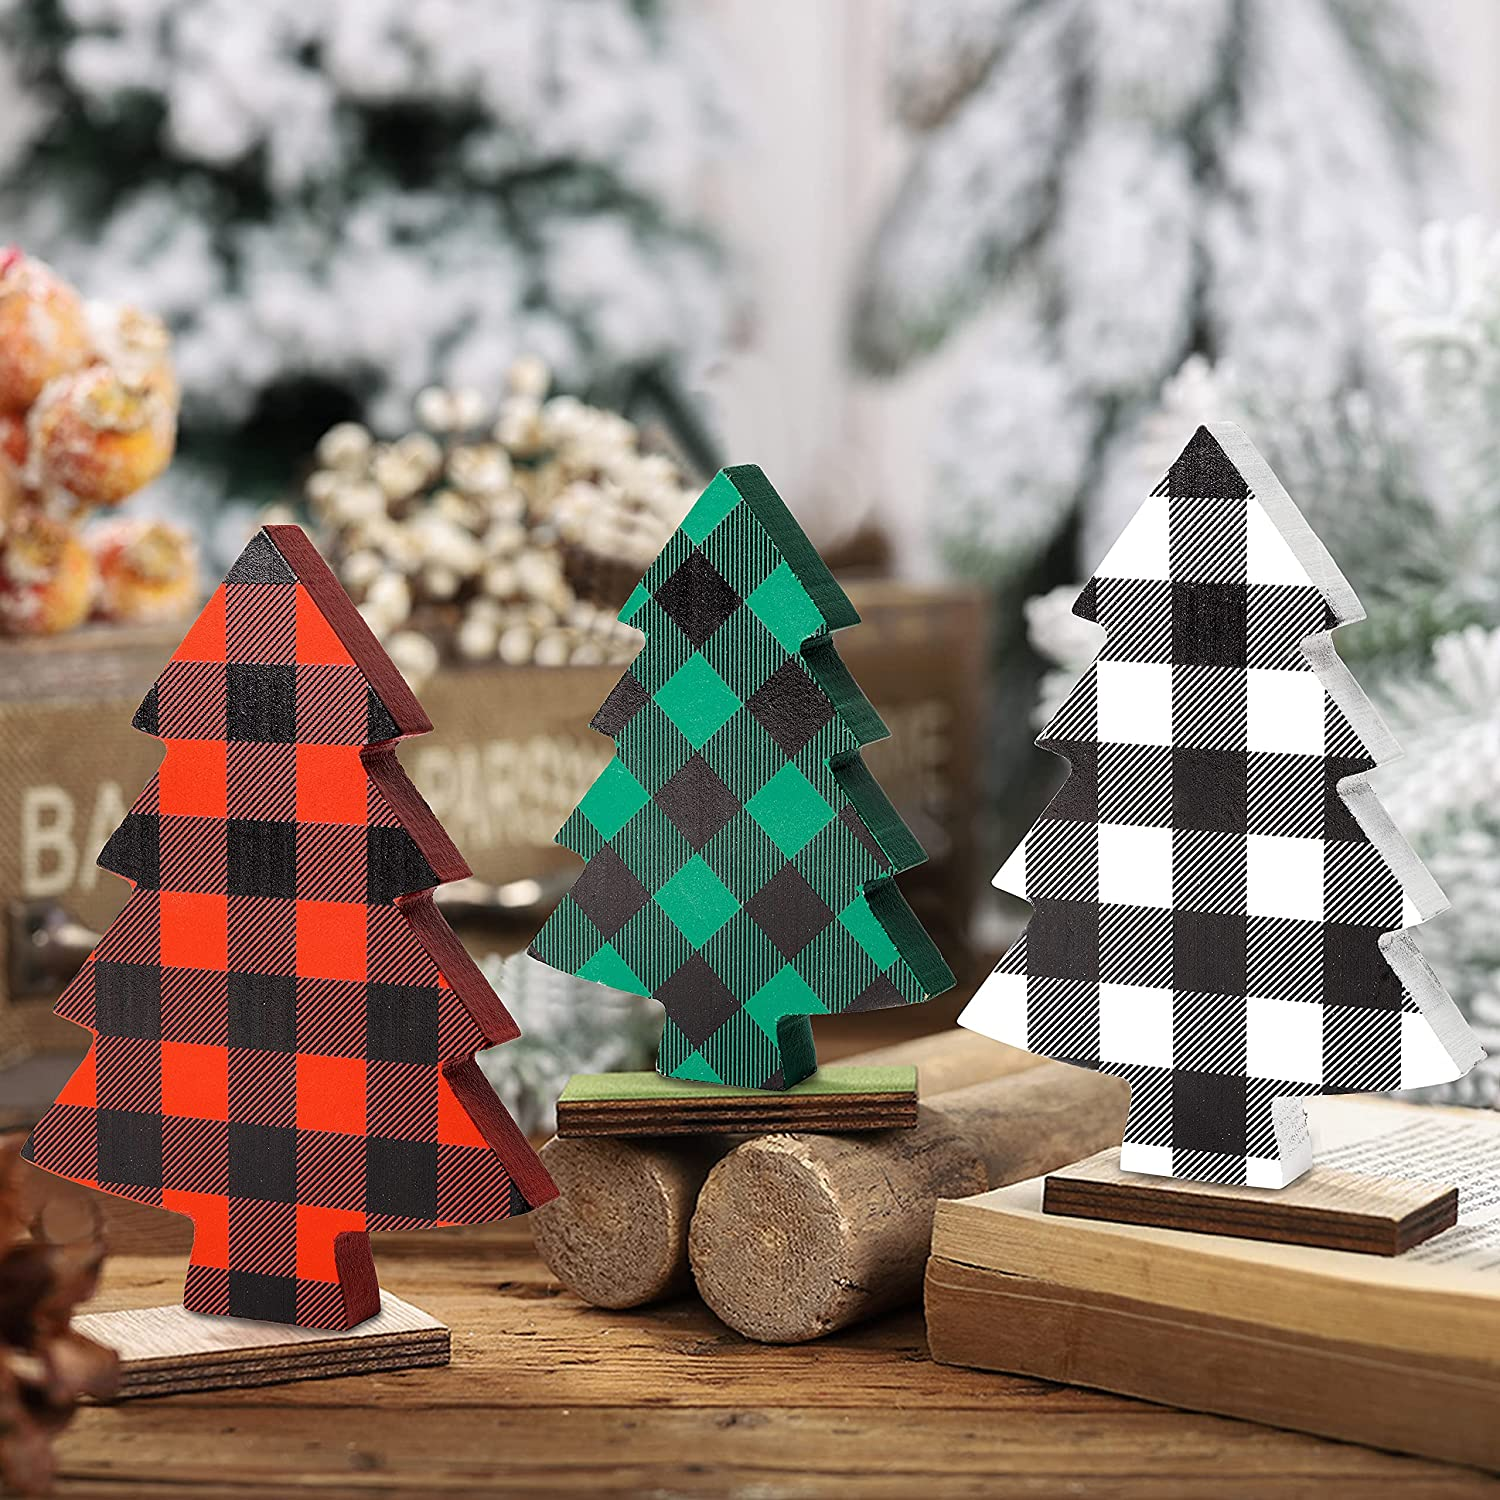 OSNIE 3 Pieces Christmas Tree Buffalo Plaid Tiered Tray Decor Xmas Freestanding Wooden Table Signs Reversible Rustic Wood Centerpiece Tabletop for Christmas Holiday Farmhouse Home Party Decorations